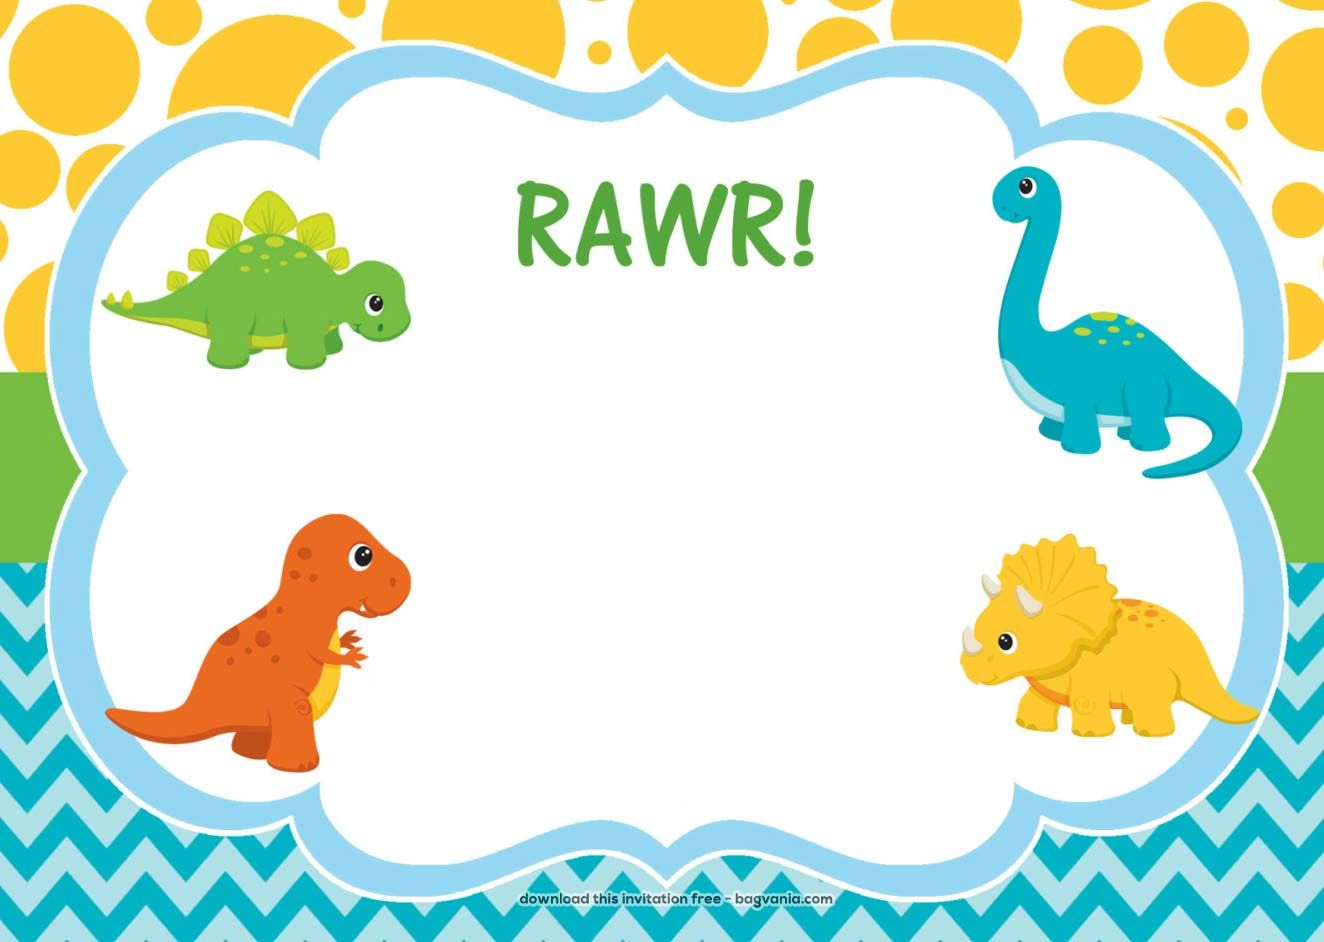 Download Free Dinosaur Birthday Invitations Dinosaur Party Invitations Dino Birthday Invitations Dinosaur Birthday Invitations Free